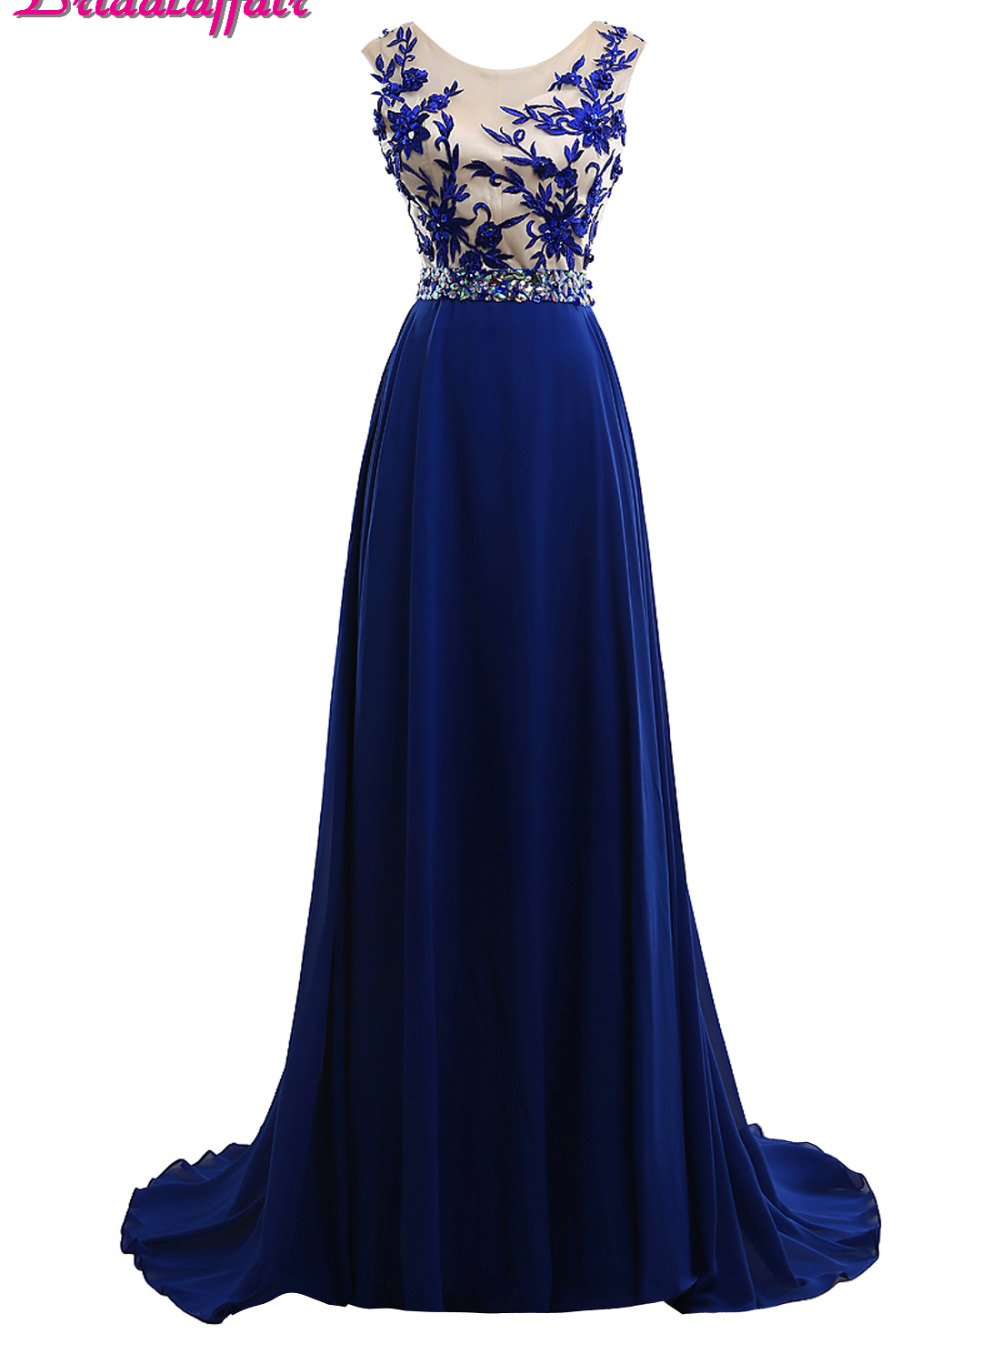 BridalaffairReal Photo Appliques Lace Scoop Neck   Prom     Dresses   2017 Sweep Train Blue Chiffon Long Evening Gown New Robe de soiree